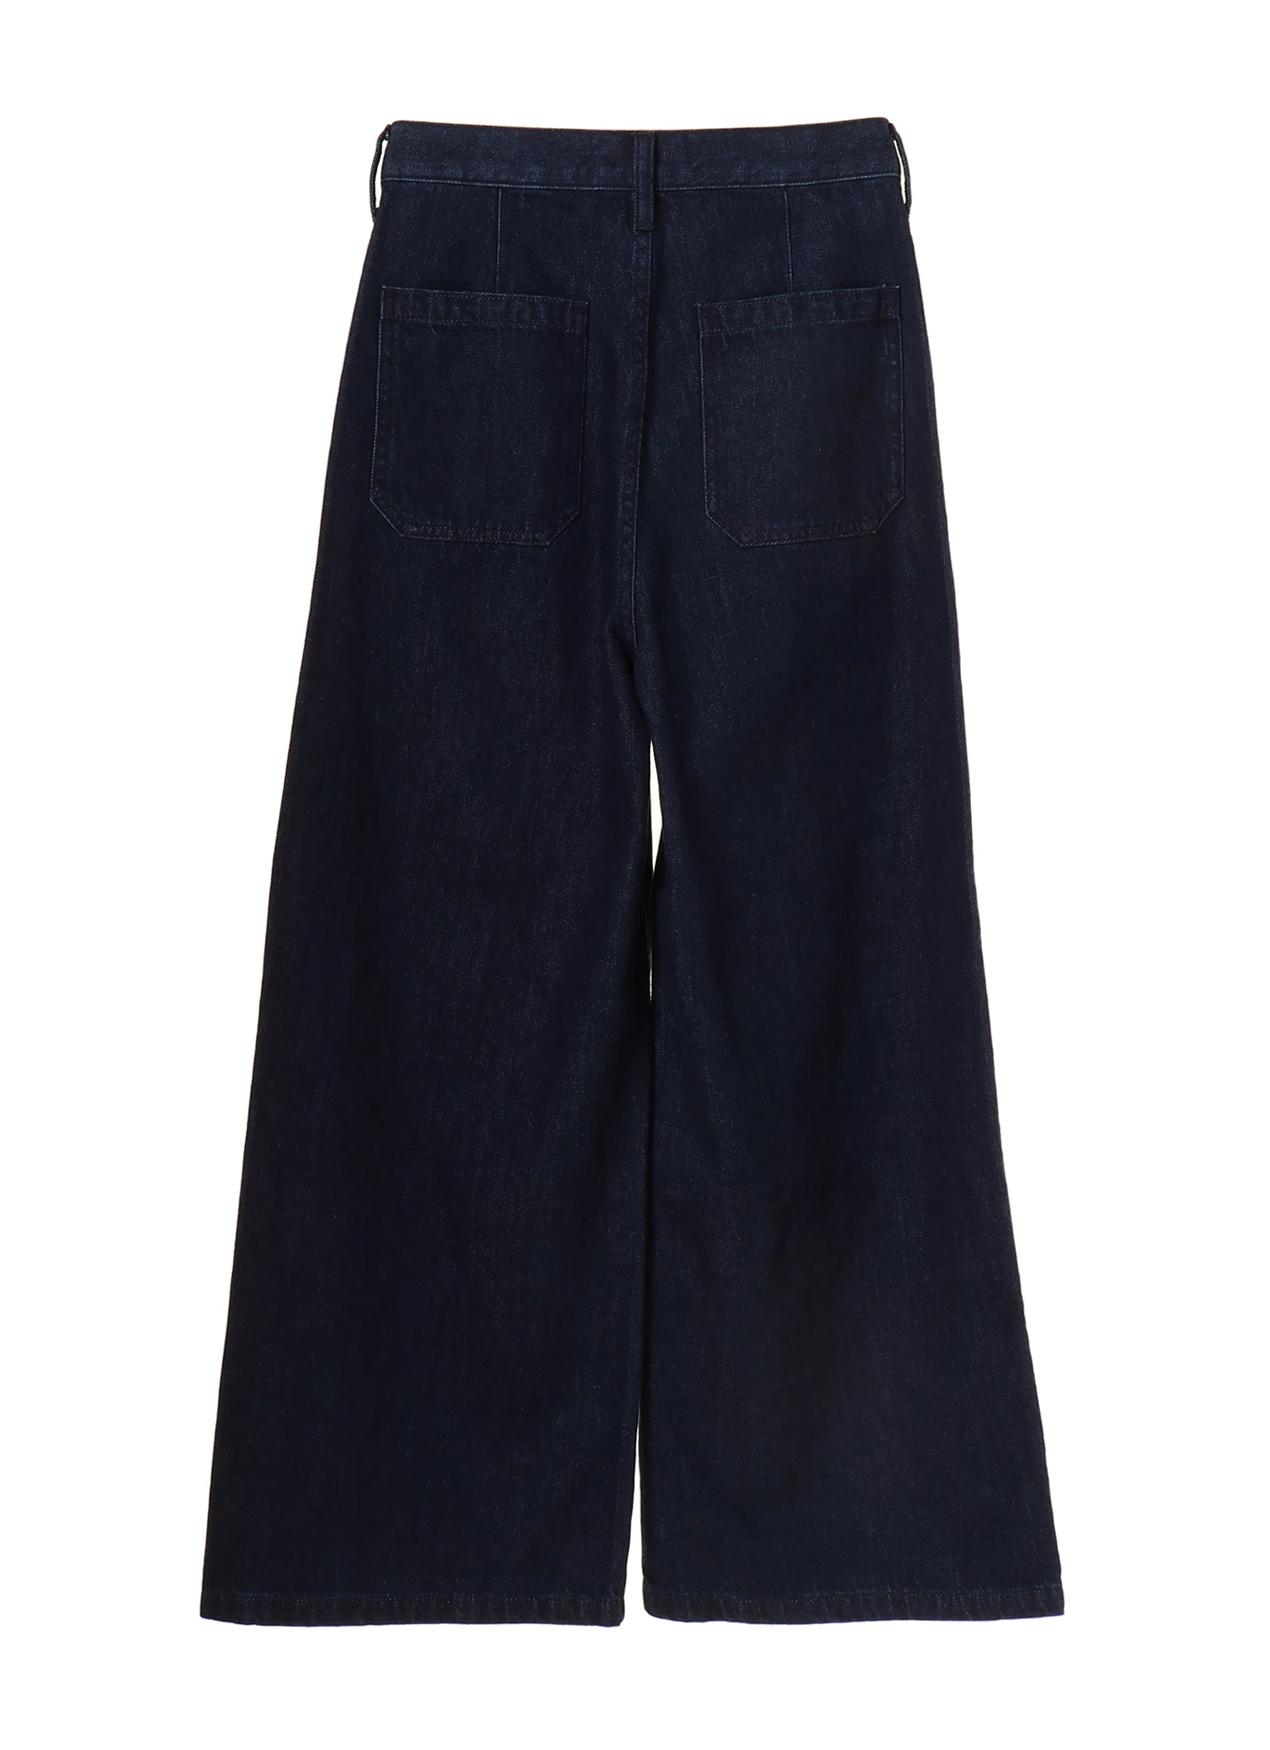 Earth, Music & Ecology Nanna Wide Denim Pants - Dark Indigo